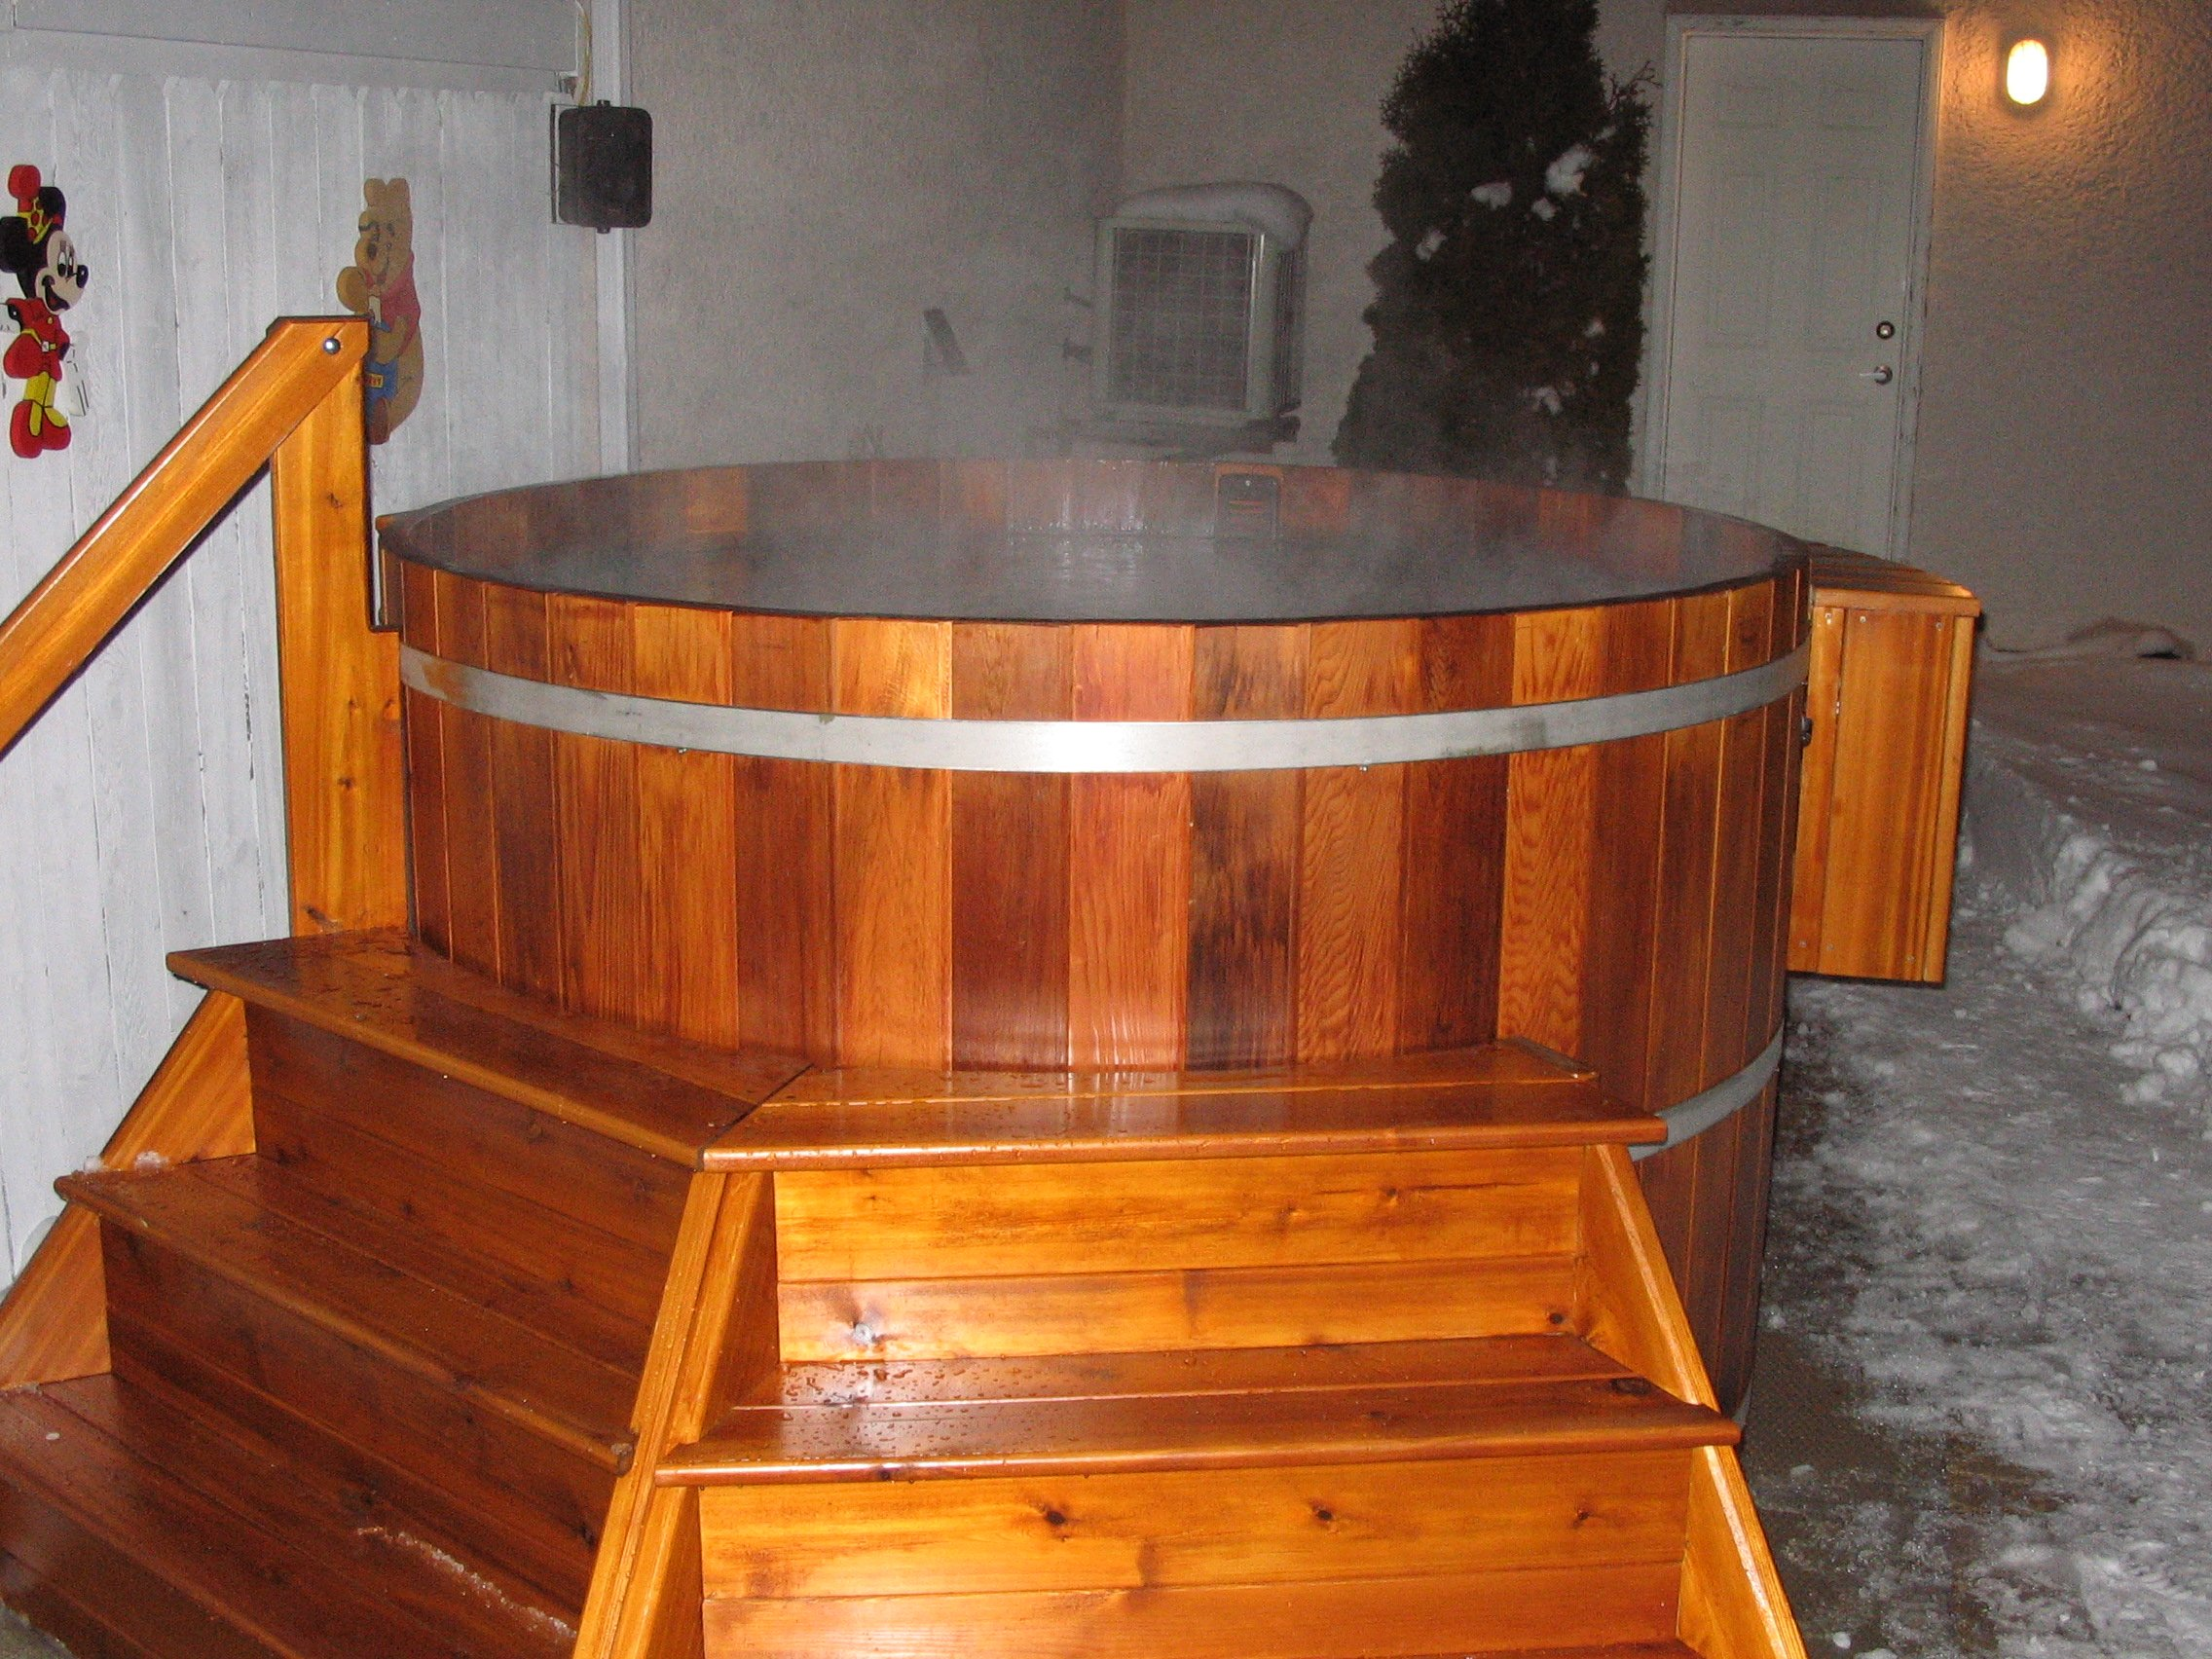 tub rental keystone stairs ironwood hot summit vacation private co vrp in county unit